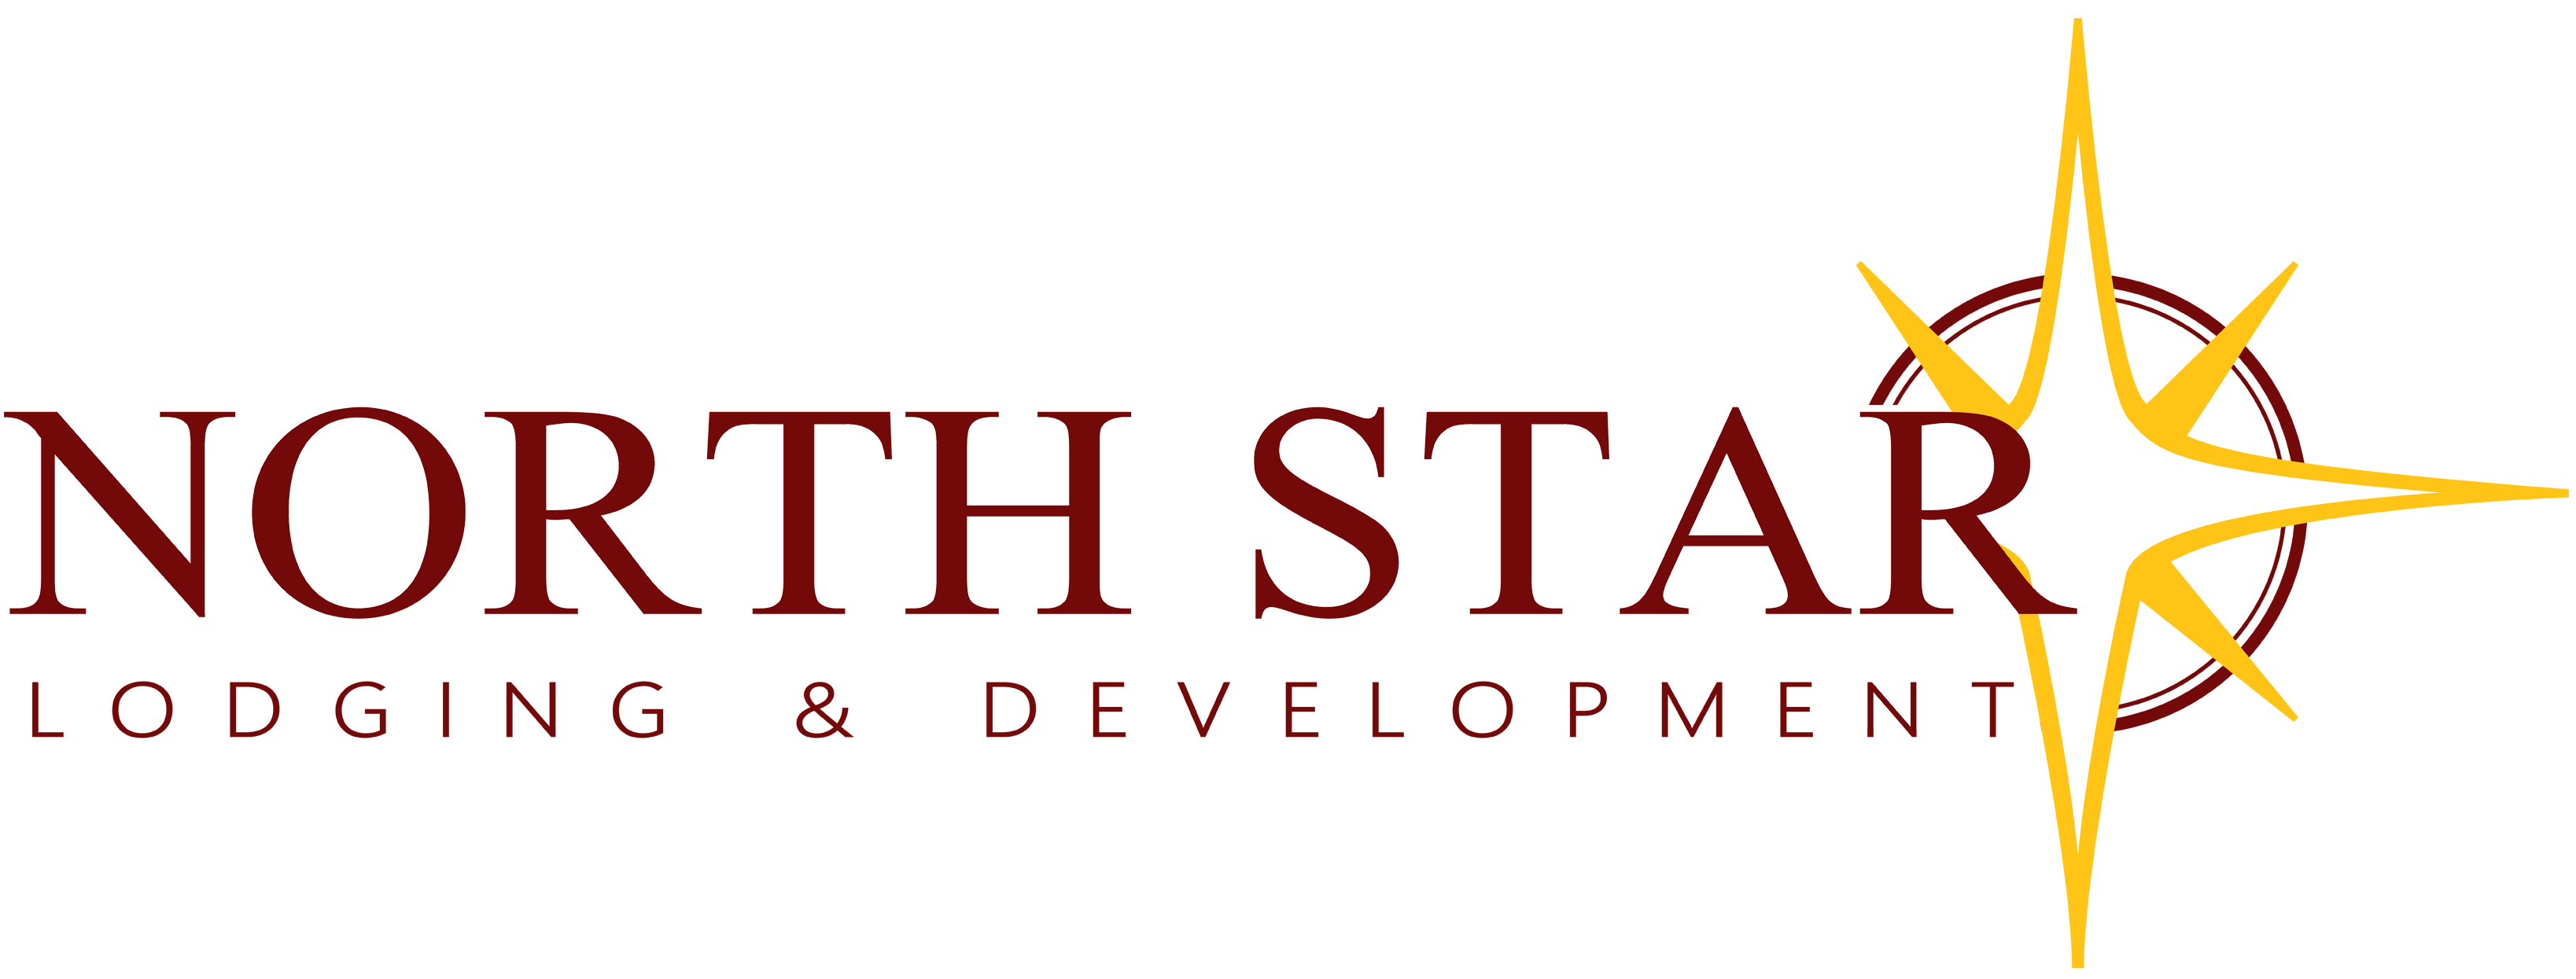 North Star Lodging and Development